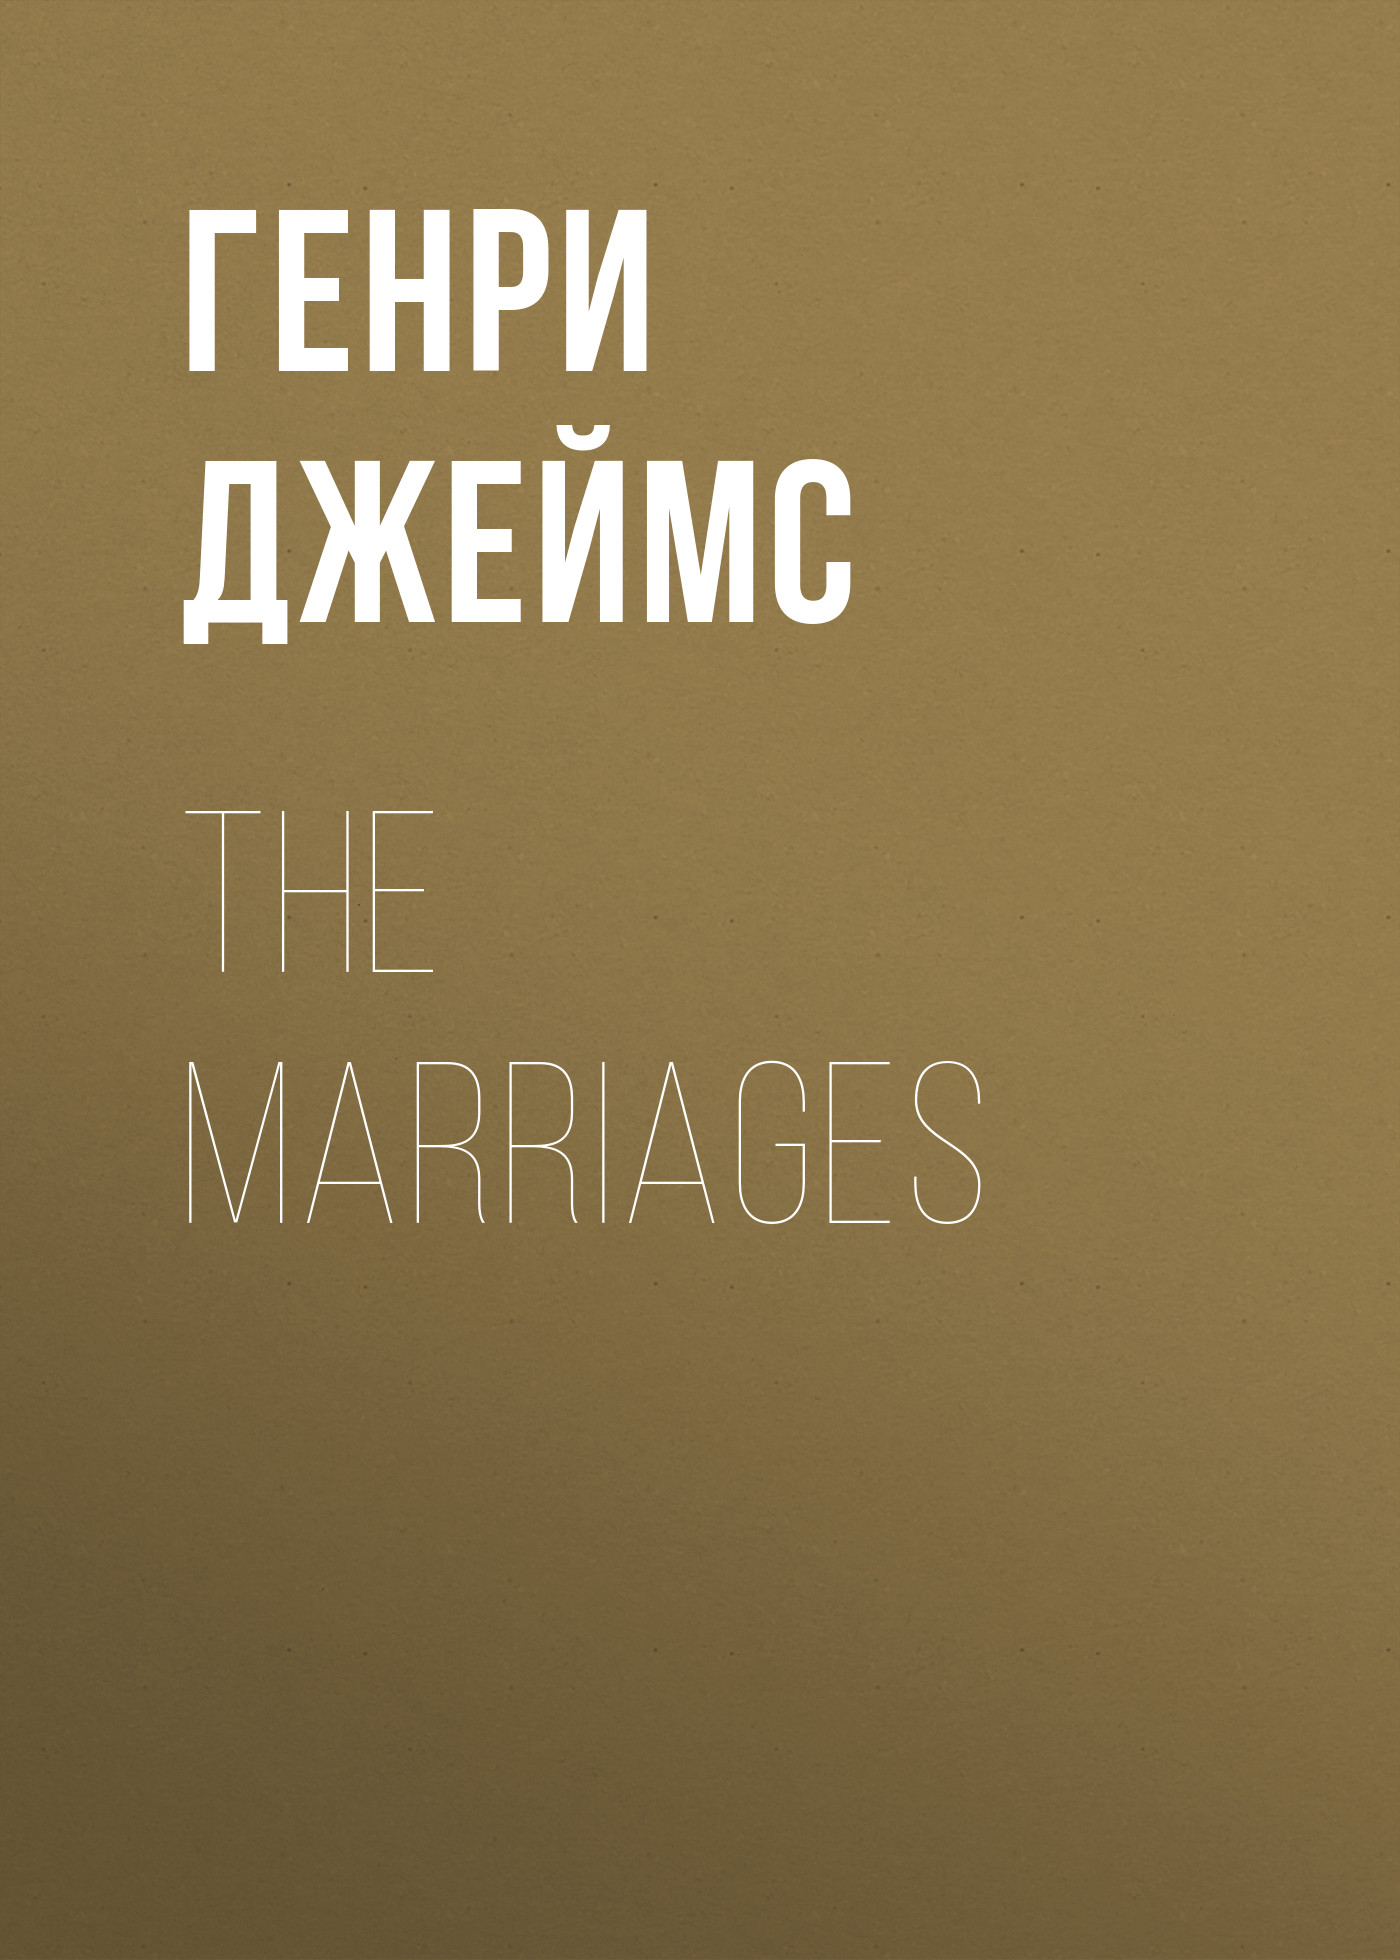 Генри Джеймс The Marriages цена 2017